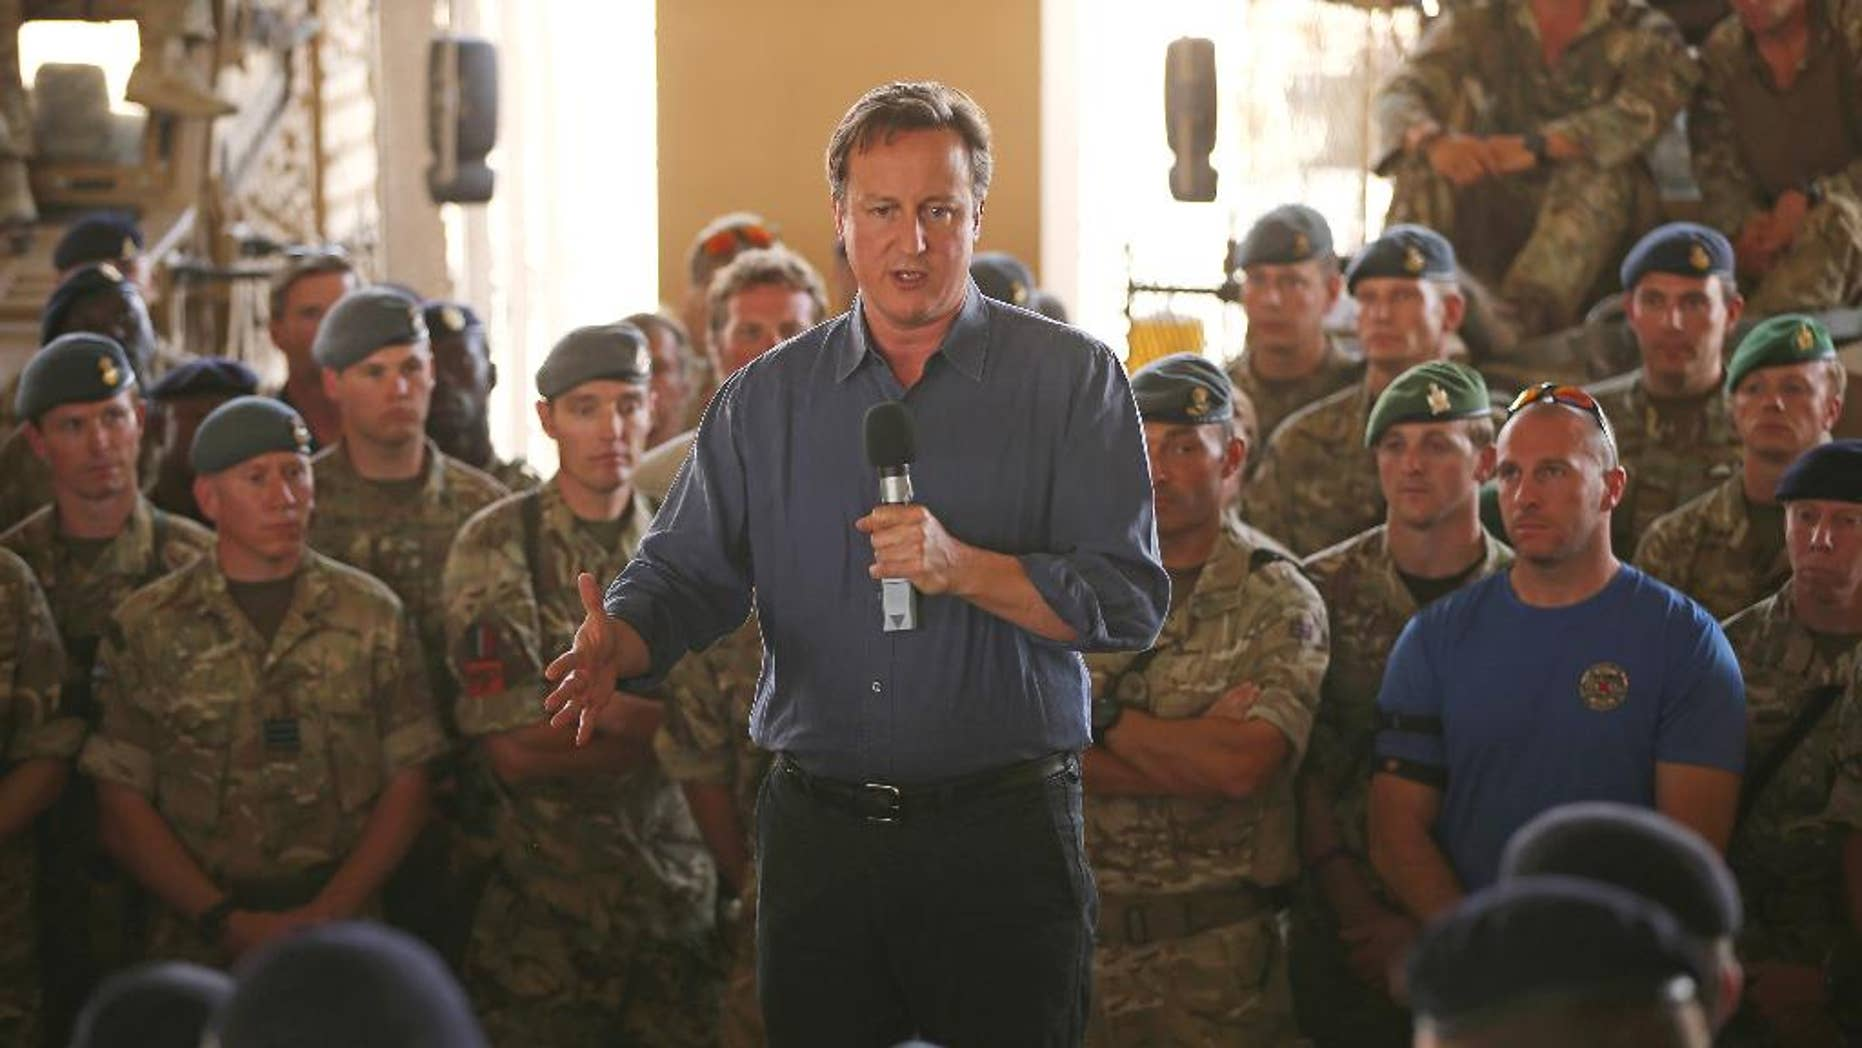 Britain's Prime Minister David Cameron, centre, addresses British troops, in Camp Bastion, Afghanistan, Friday, Oct. 3, 2014. Cameron on Friday pledged support for Afghanistan's newly sworn-in president and the country's new unity government, saying during a surprise visit to Kabul that Britain is committed to helping Afghans build a more secure and prosperous future. (AP Photo/Dan Kitwood, Pool)